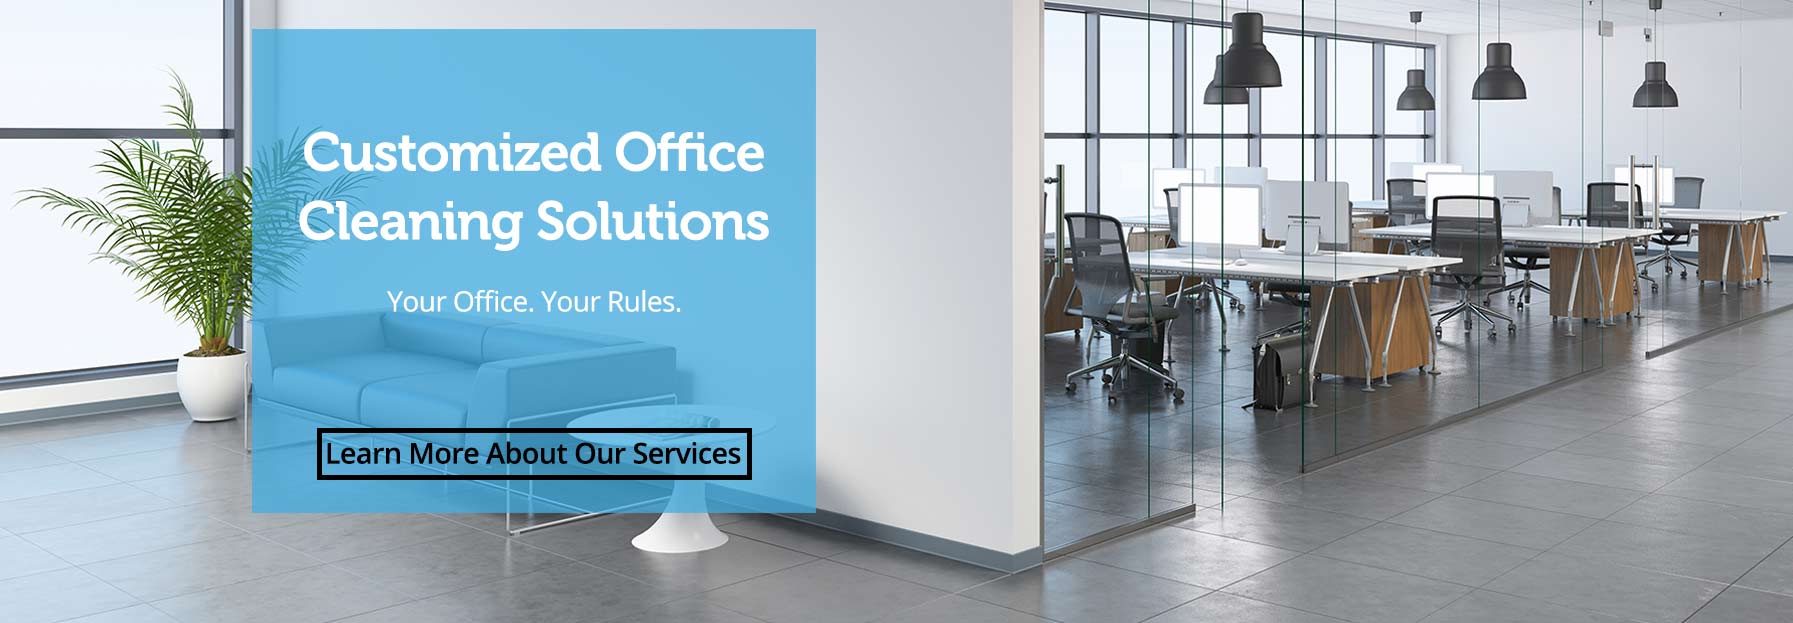 office cleaning janitorial services